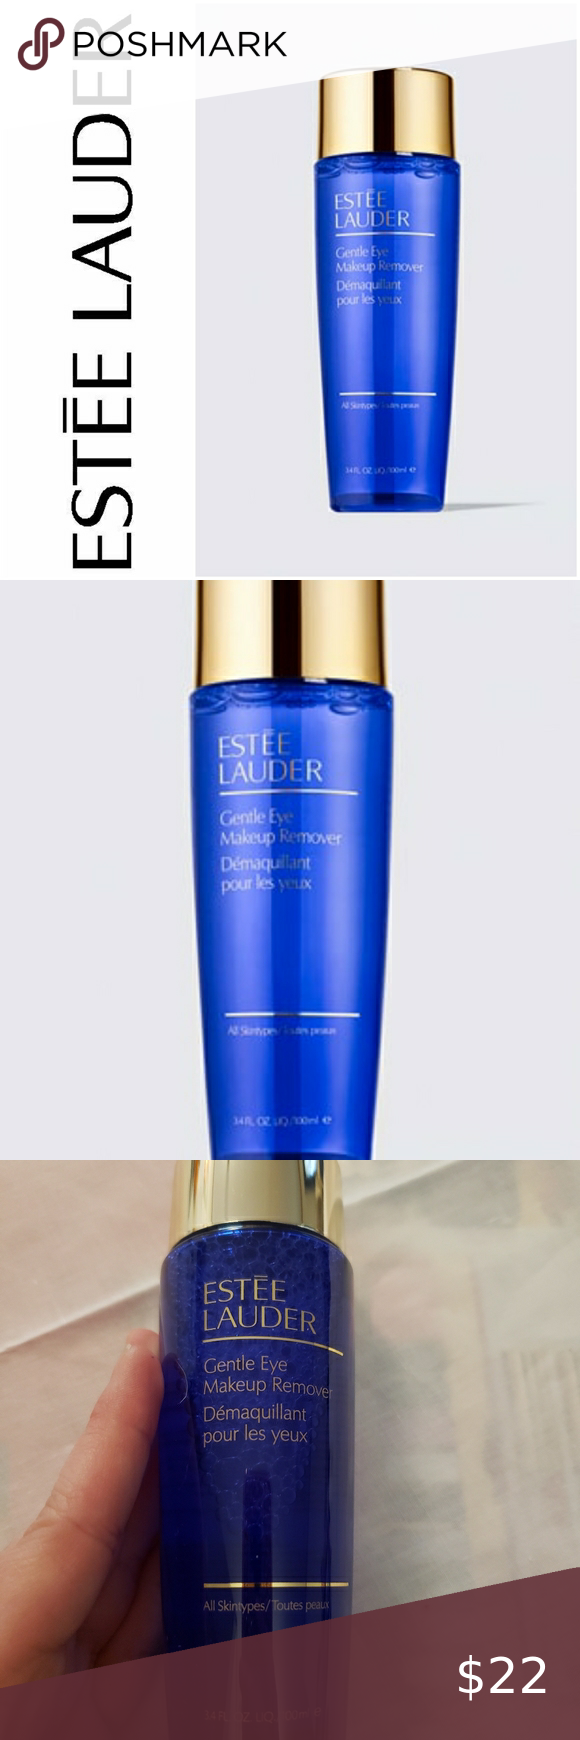 Estee Lauder Gentle Eye Makeup Remover in 2020 Gentle